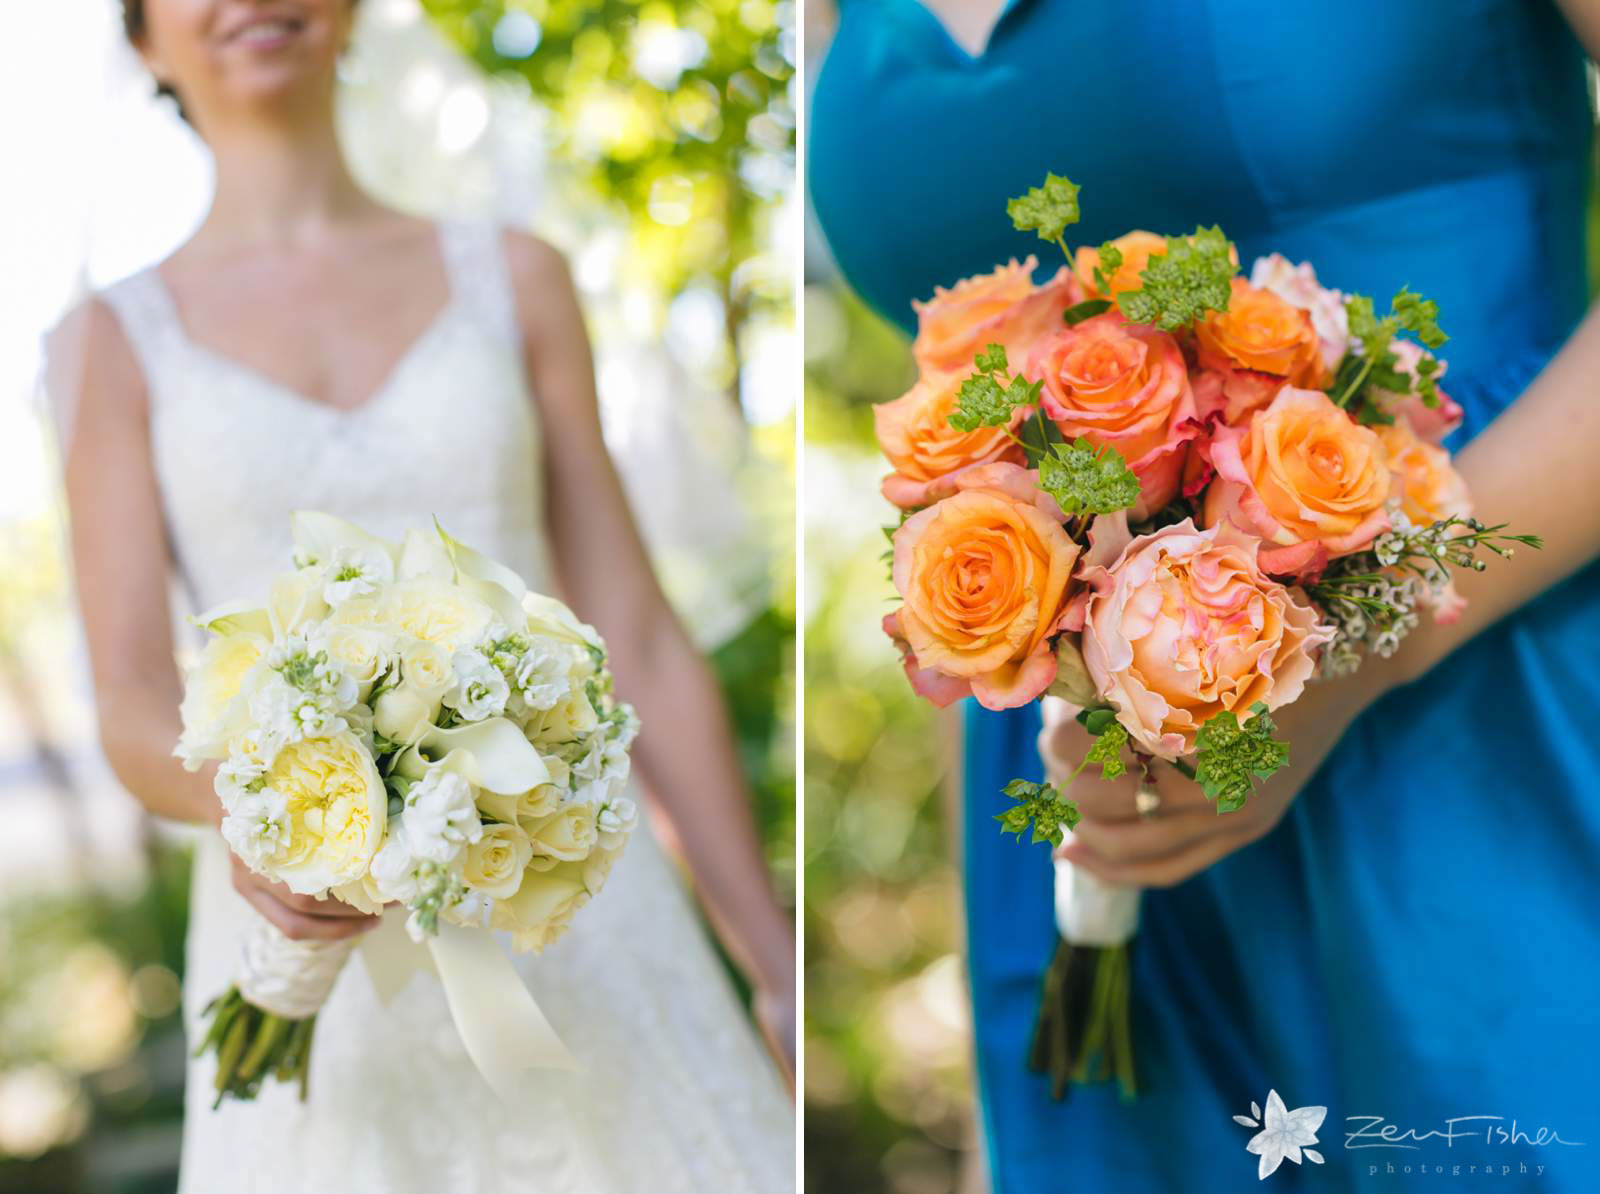 Detail of bride bouquet with yellow and white roses, bridesmaids bouquets with pink and orange roses